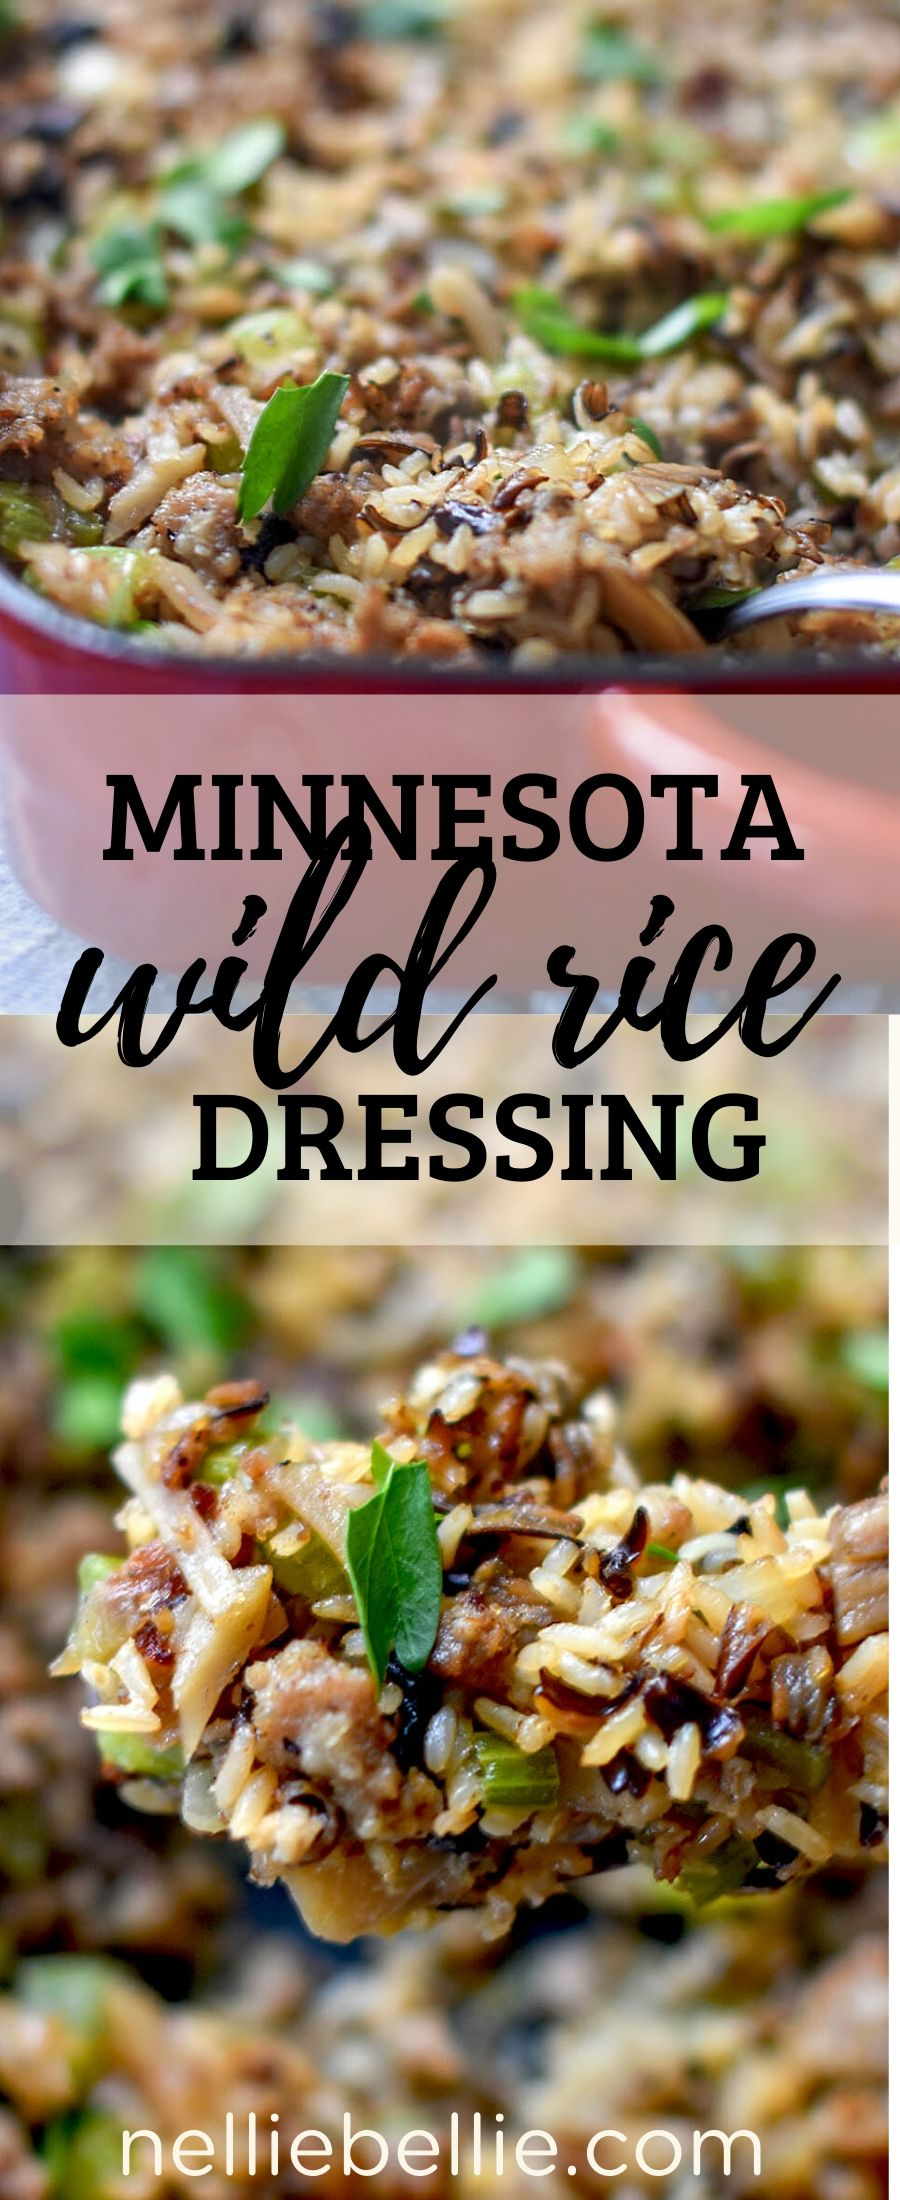 A Minnesota recipe for wild rice dressing that is simple and delicious. Using canned wild rice and ready-to-make brown rice, this is an easy dish for your holiday table! #wildrice #dressing #stuffing #casserole #minnesota